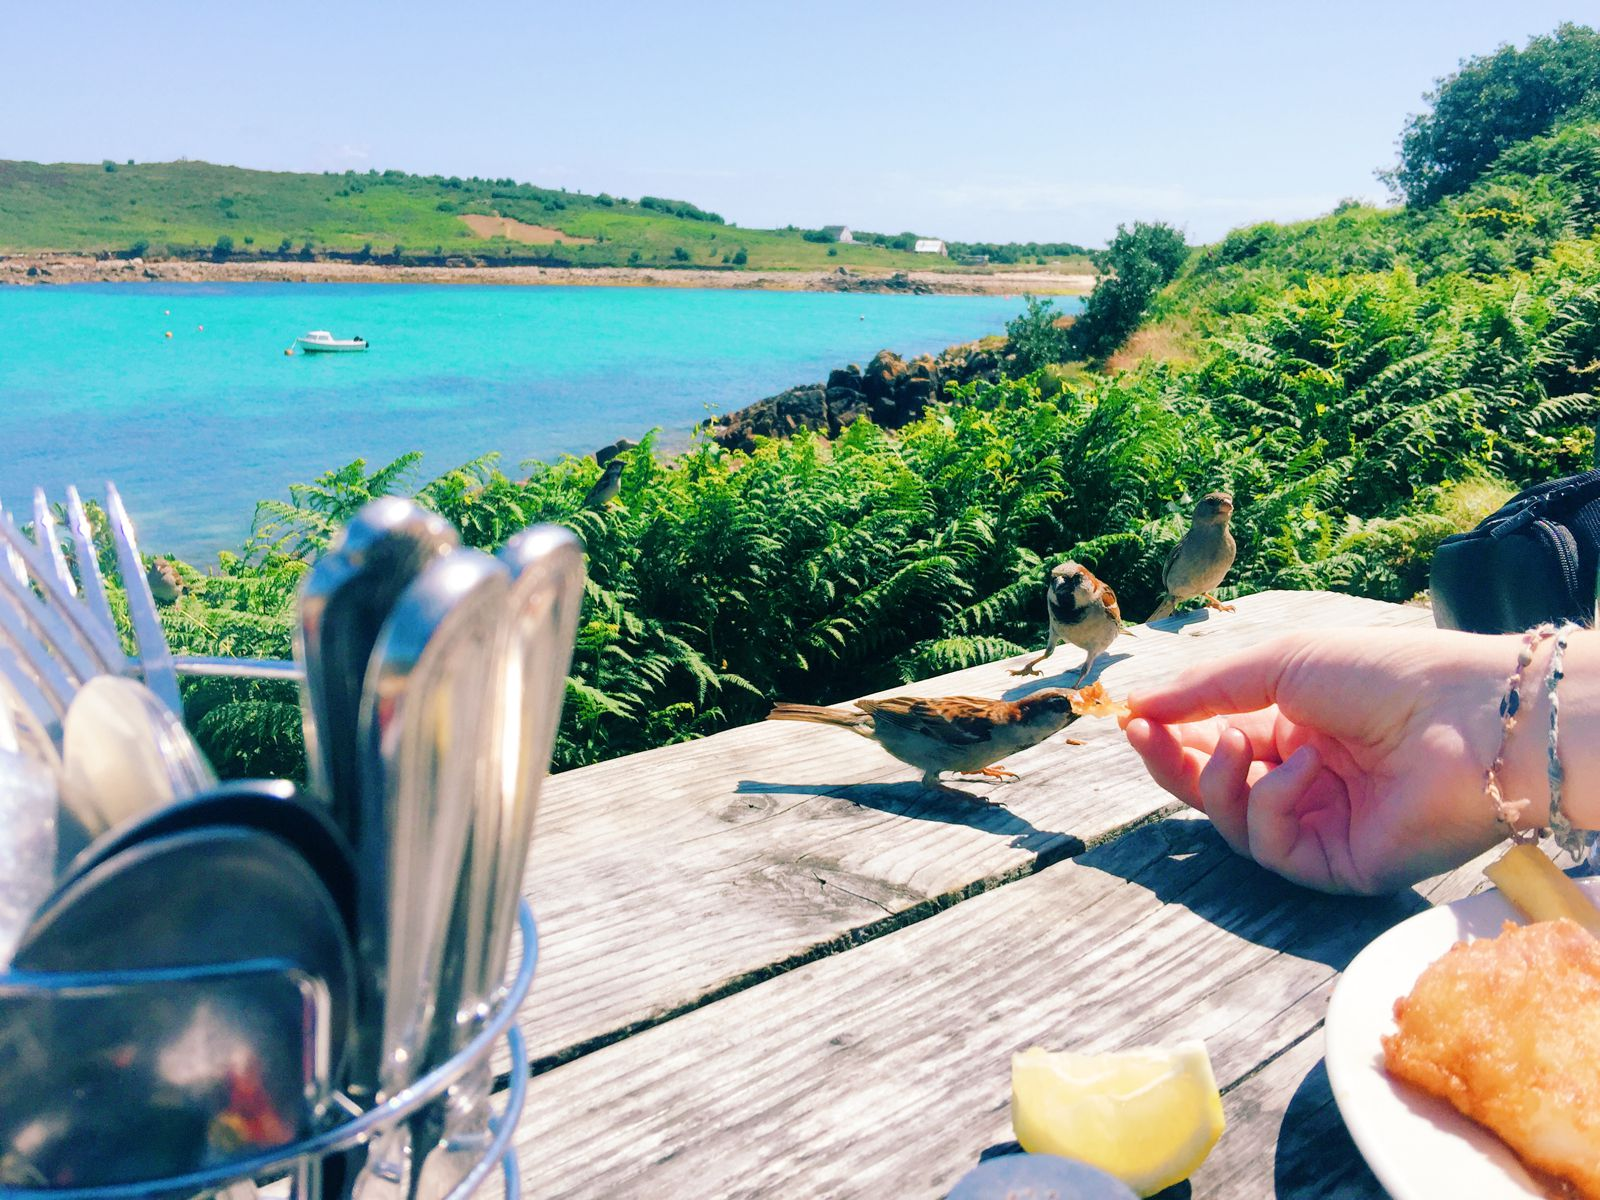 More Photos From The Isles Of Scilly... (1)